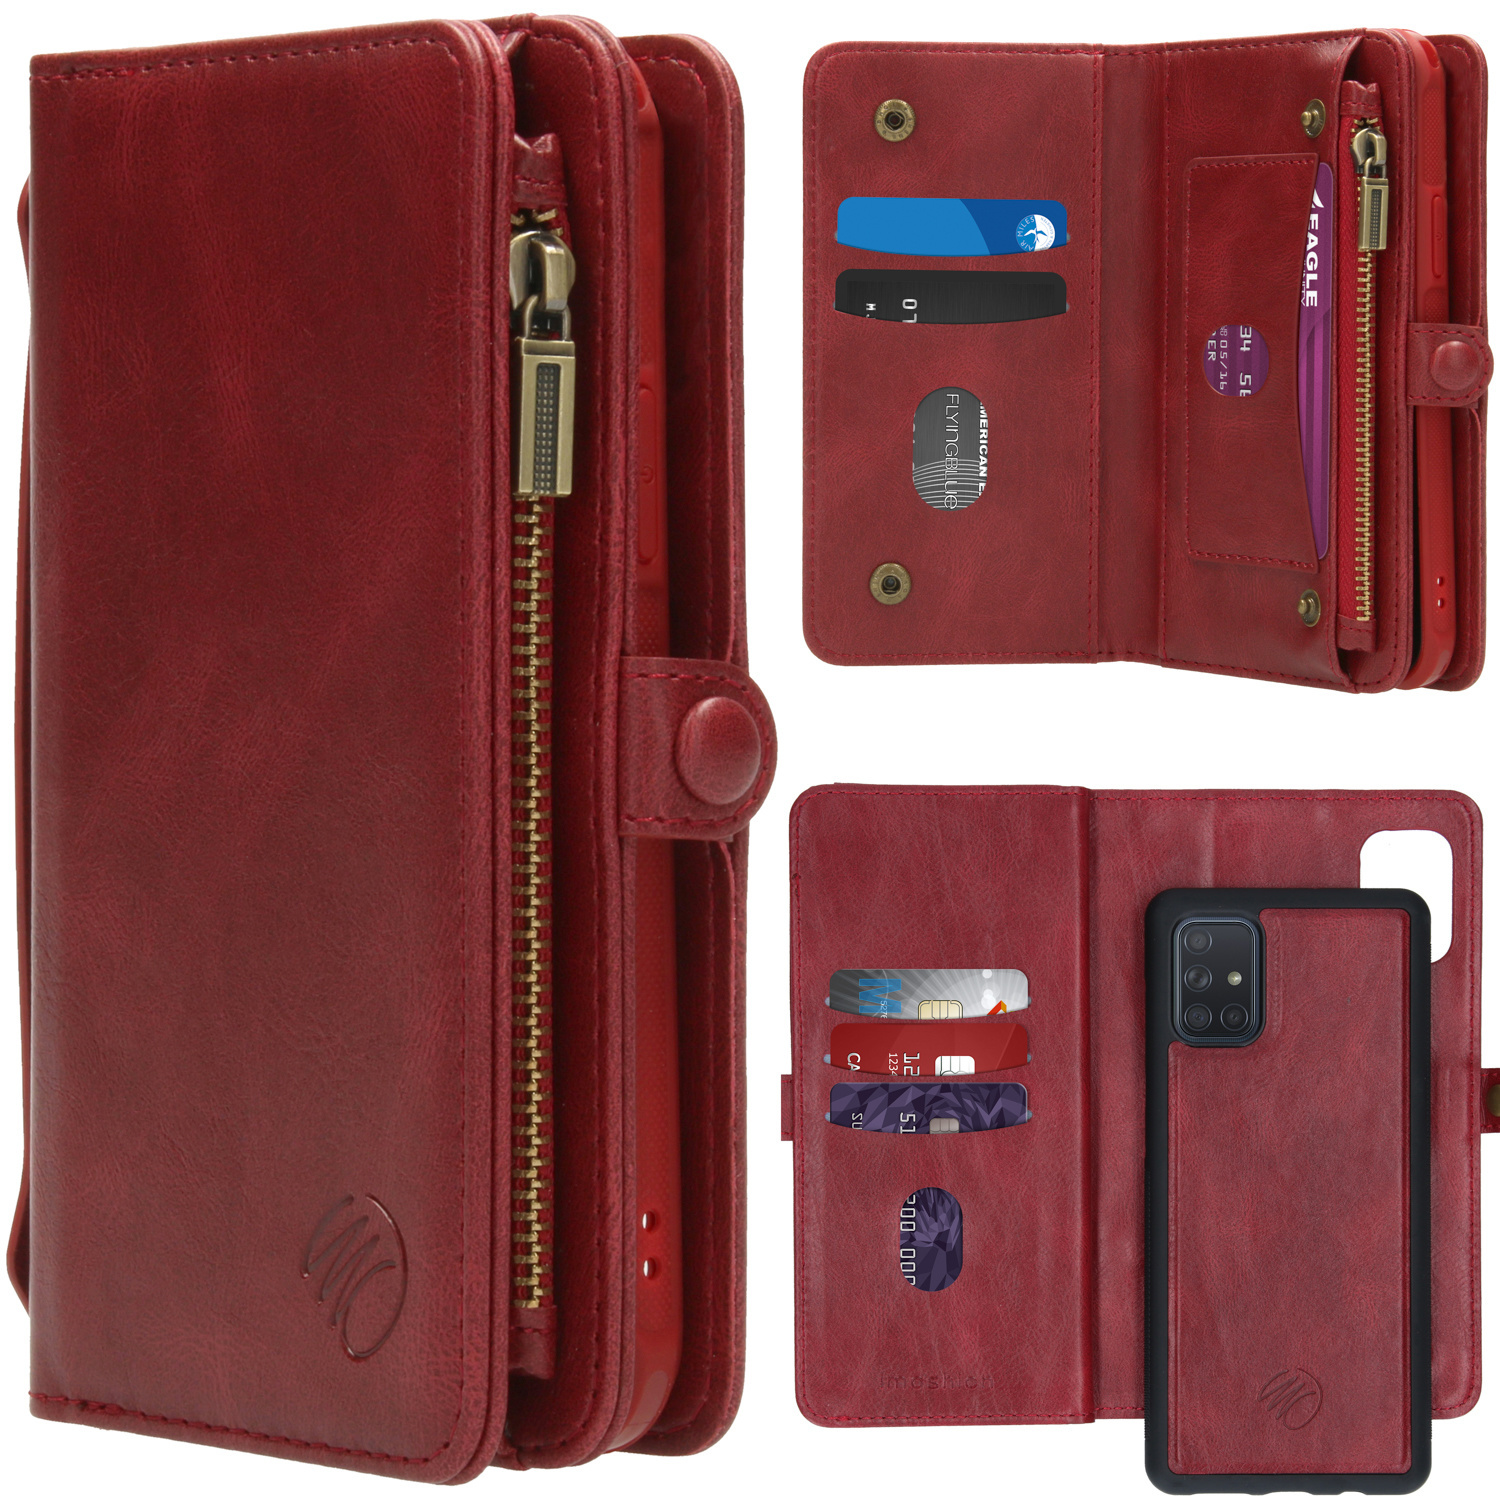 iMoshion 2-in-1 Wallet Booktype Samsung Galaxy A71 - Rood